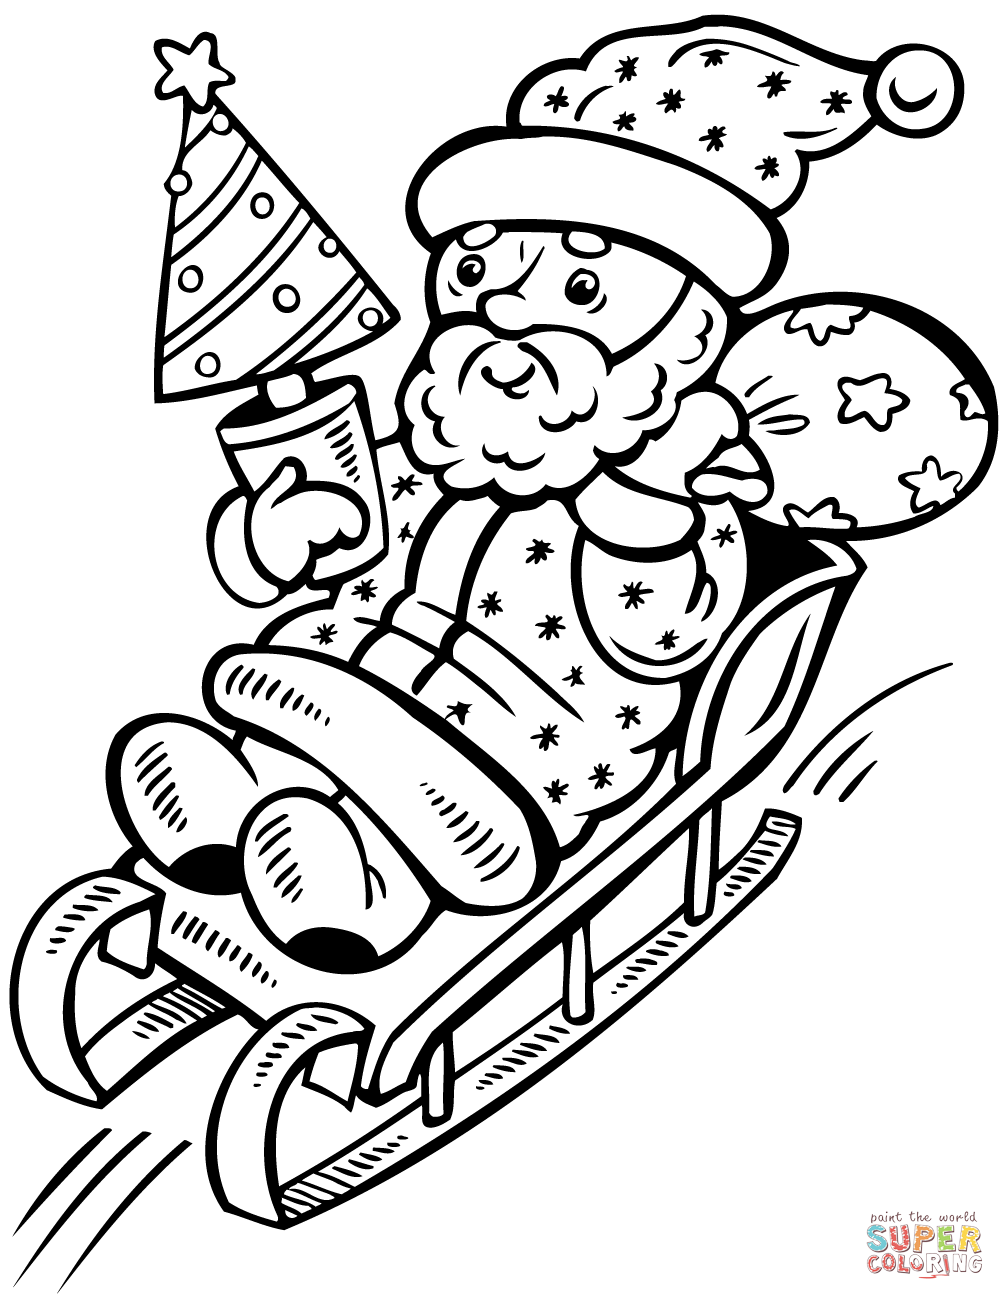 Santa Claus Print Out Coloring Pages With On Sleigh Christmas Tree Page Free